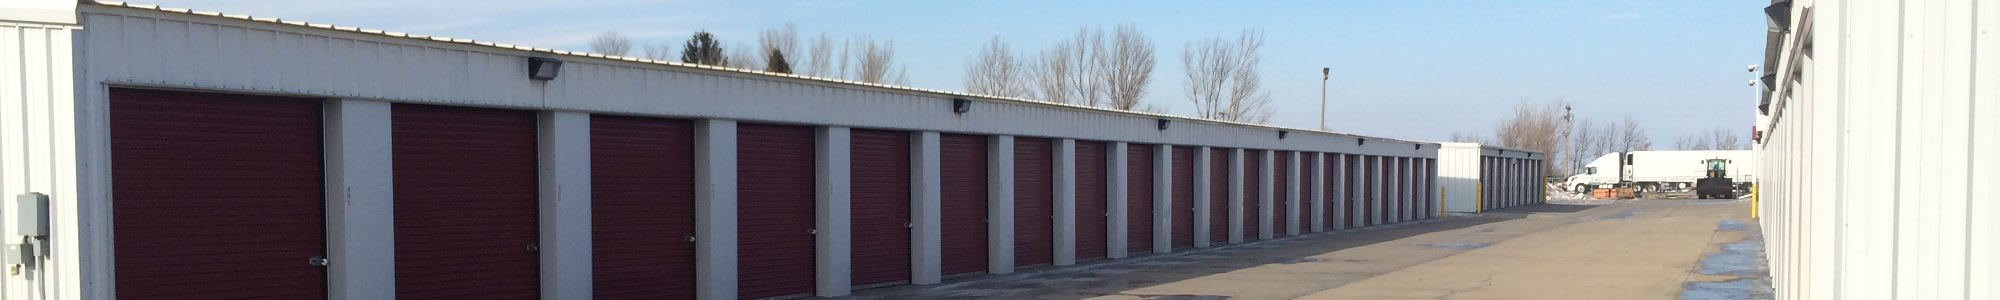 Self storage units in Grand Forks